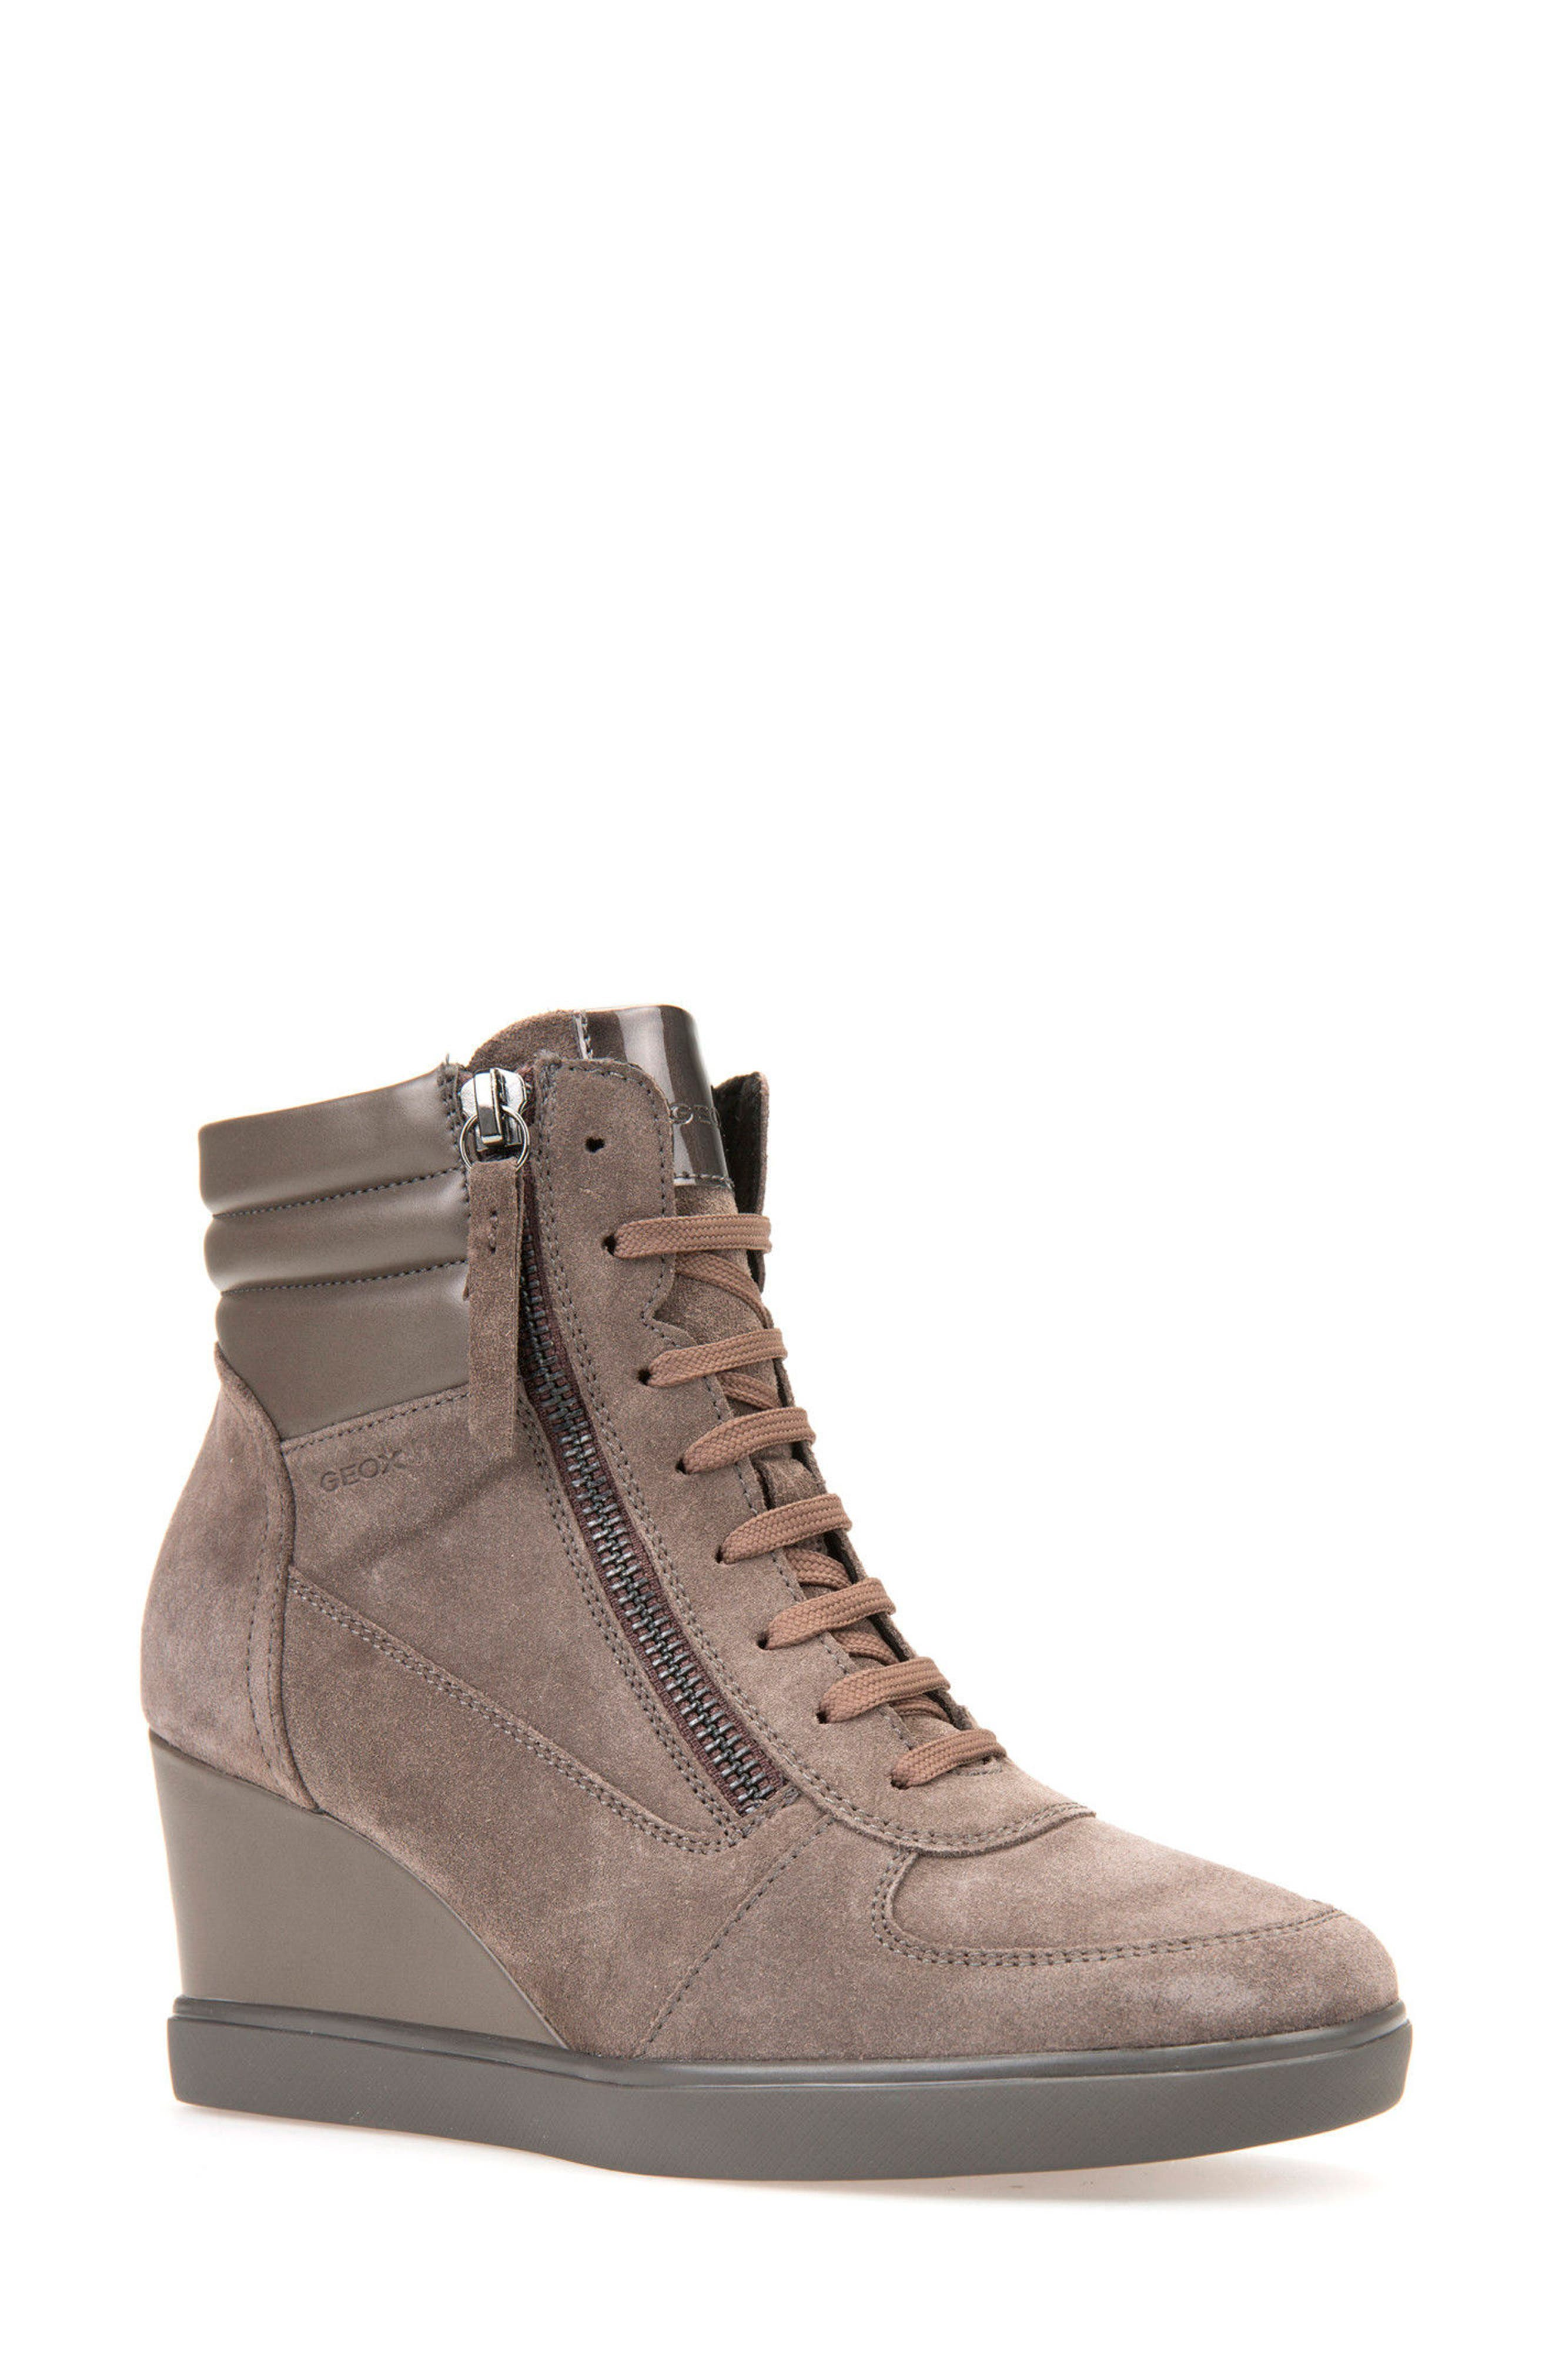 Alternate Image 1 Selected - Geox Eleni Lace-Up Wedge Bootie (Women)